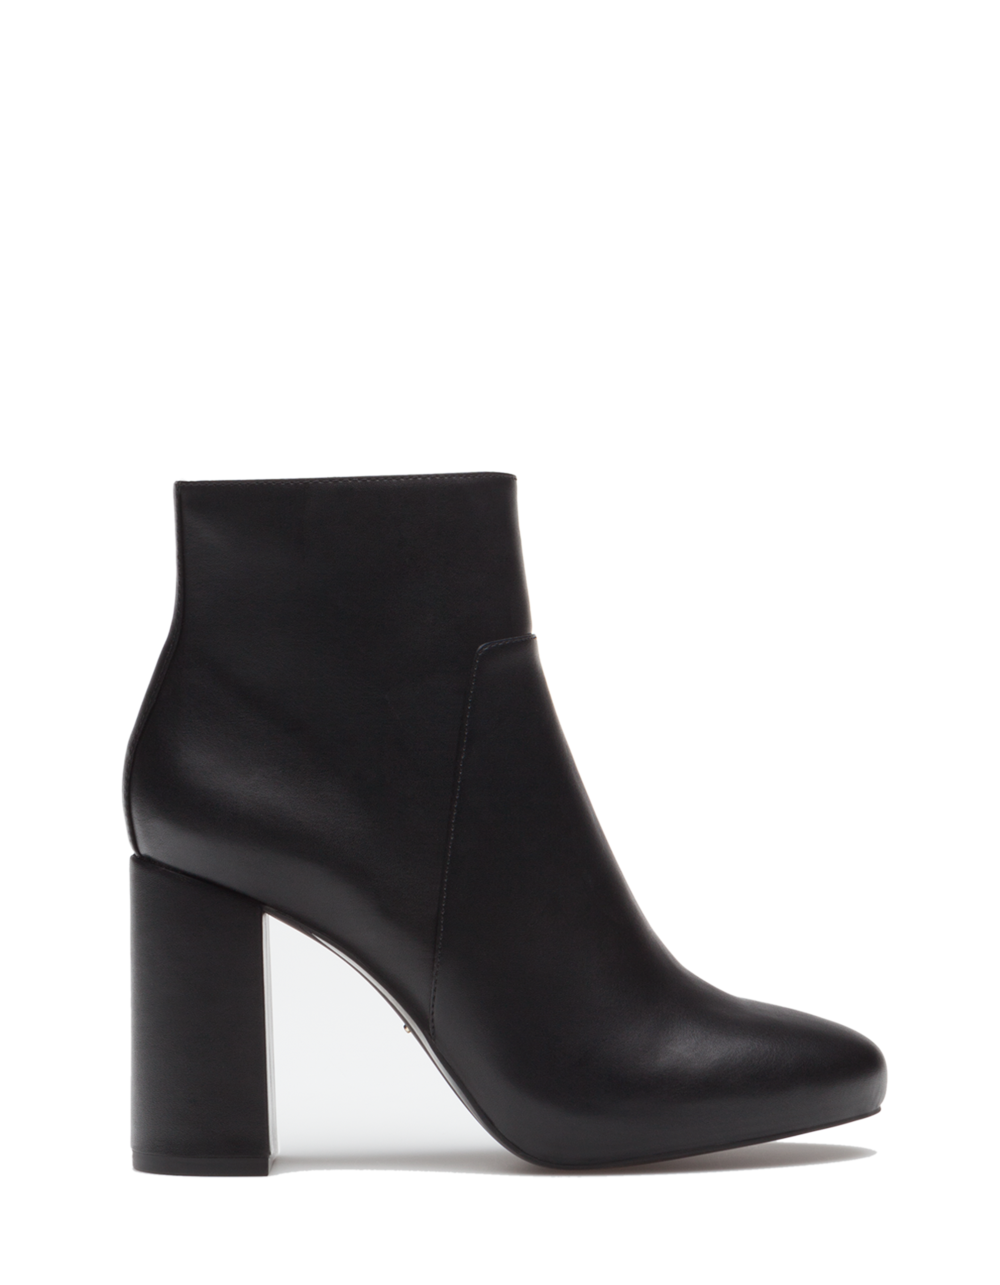 Stradivarius_fw15_shoes (8).png